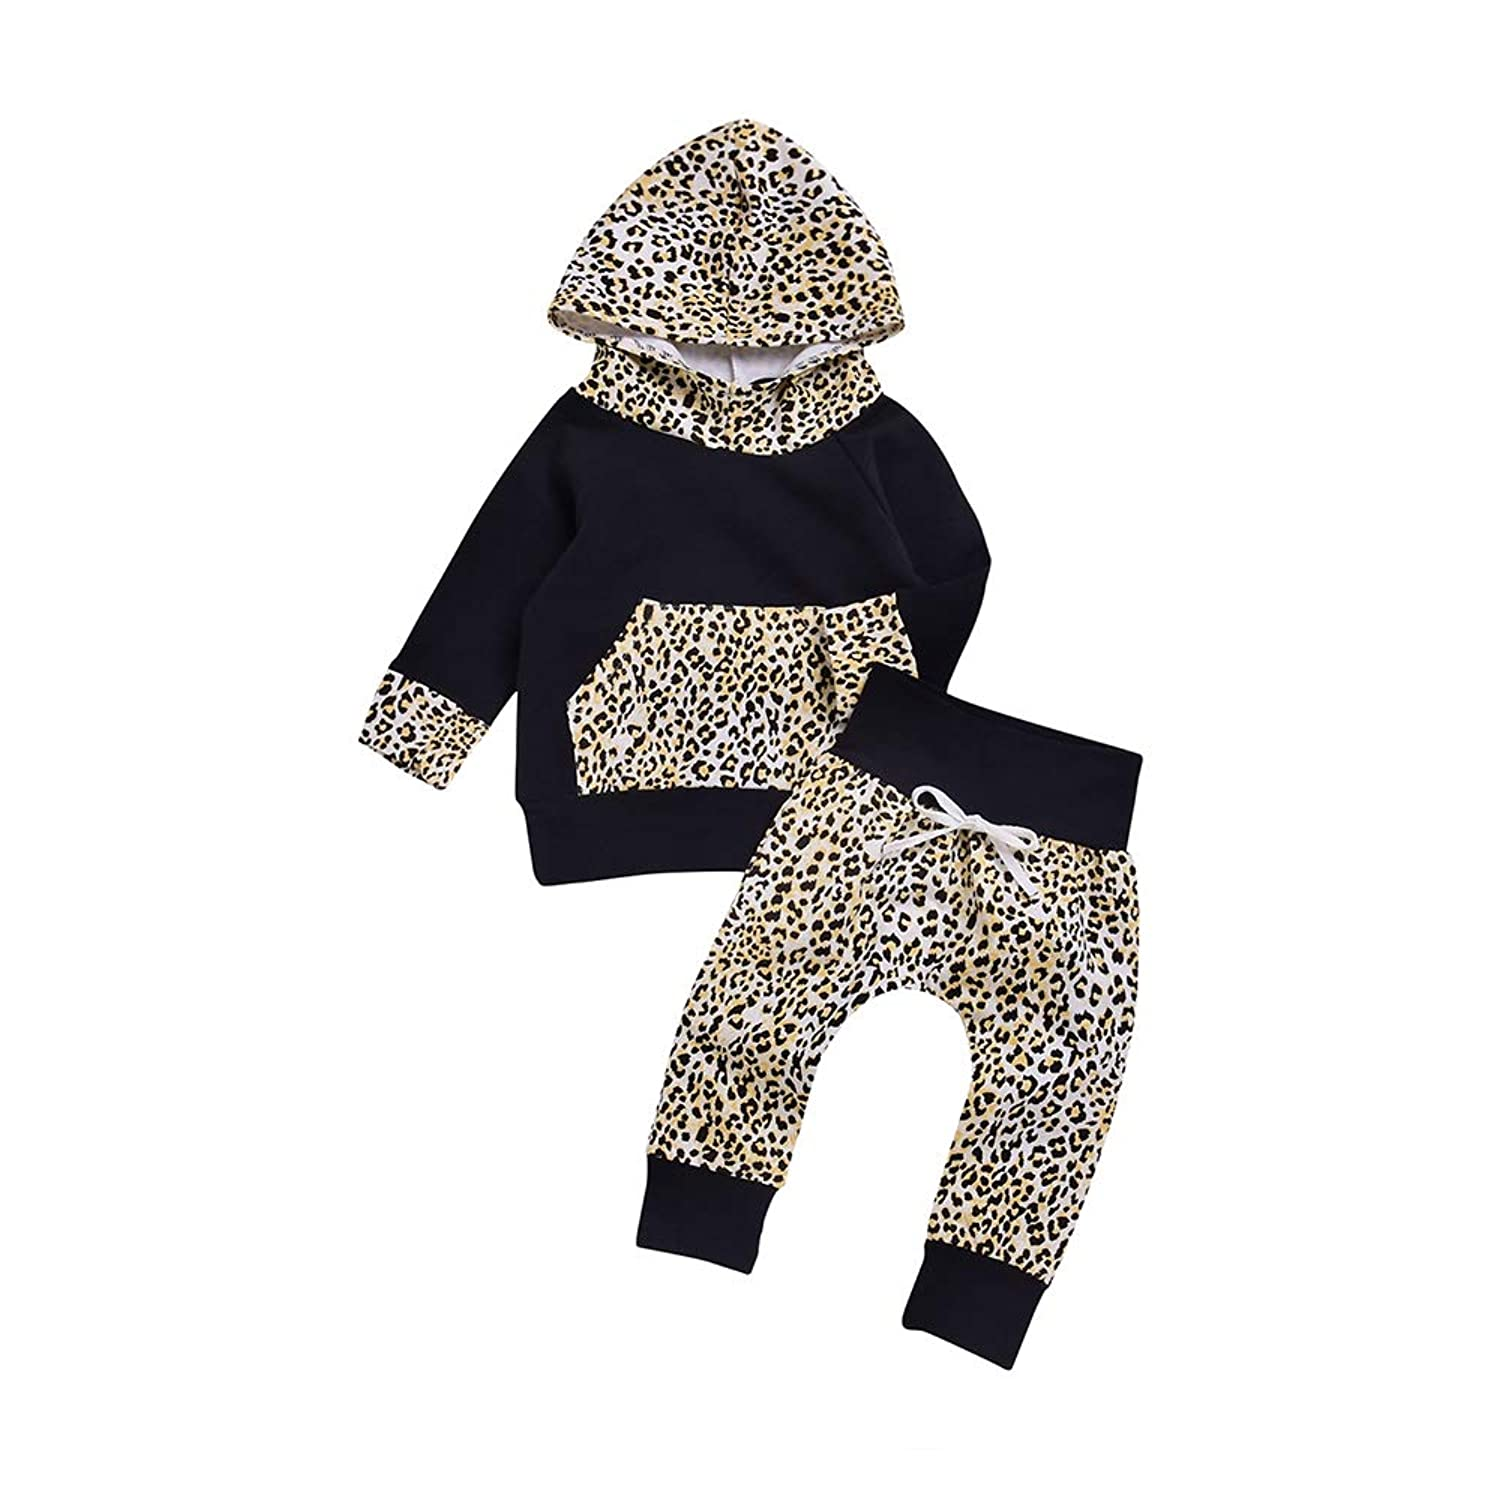 1912f9462f Top1: Charmkids Toddler Baby Boys Girl Long Sleeve Leopard Print Black  Hooded Sweater+Leopard Lace Trousers Infant Outfits